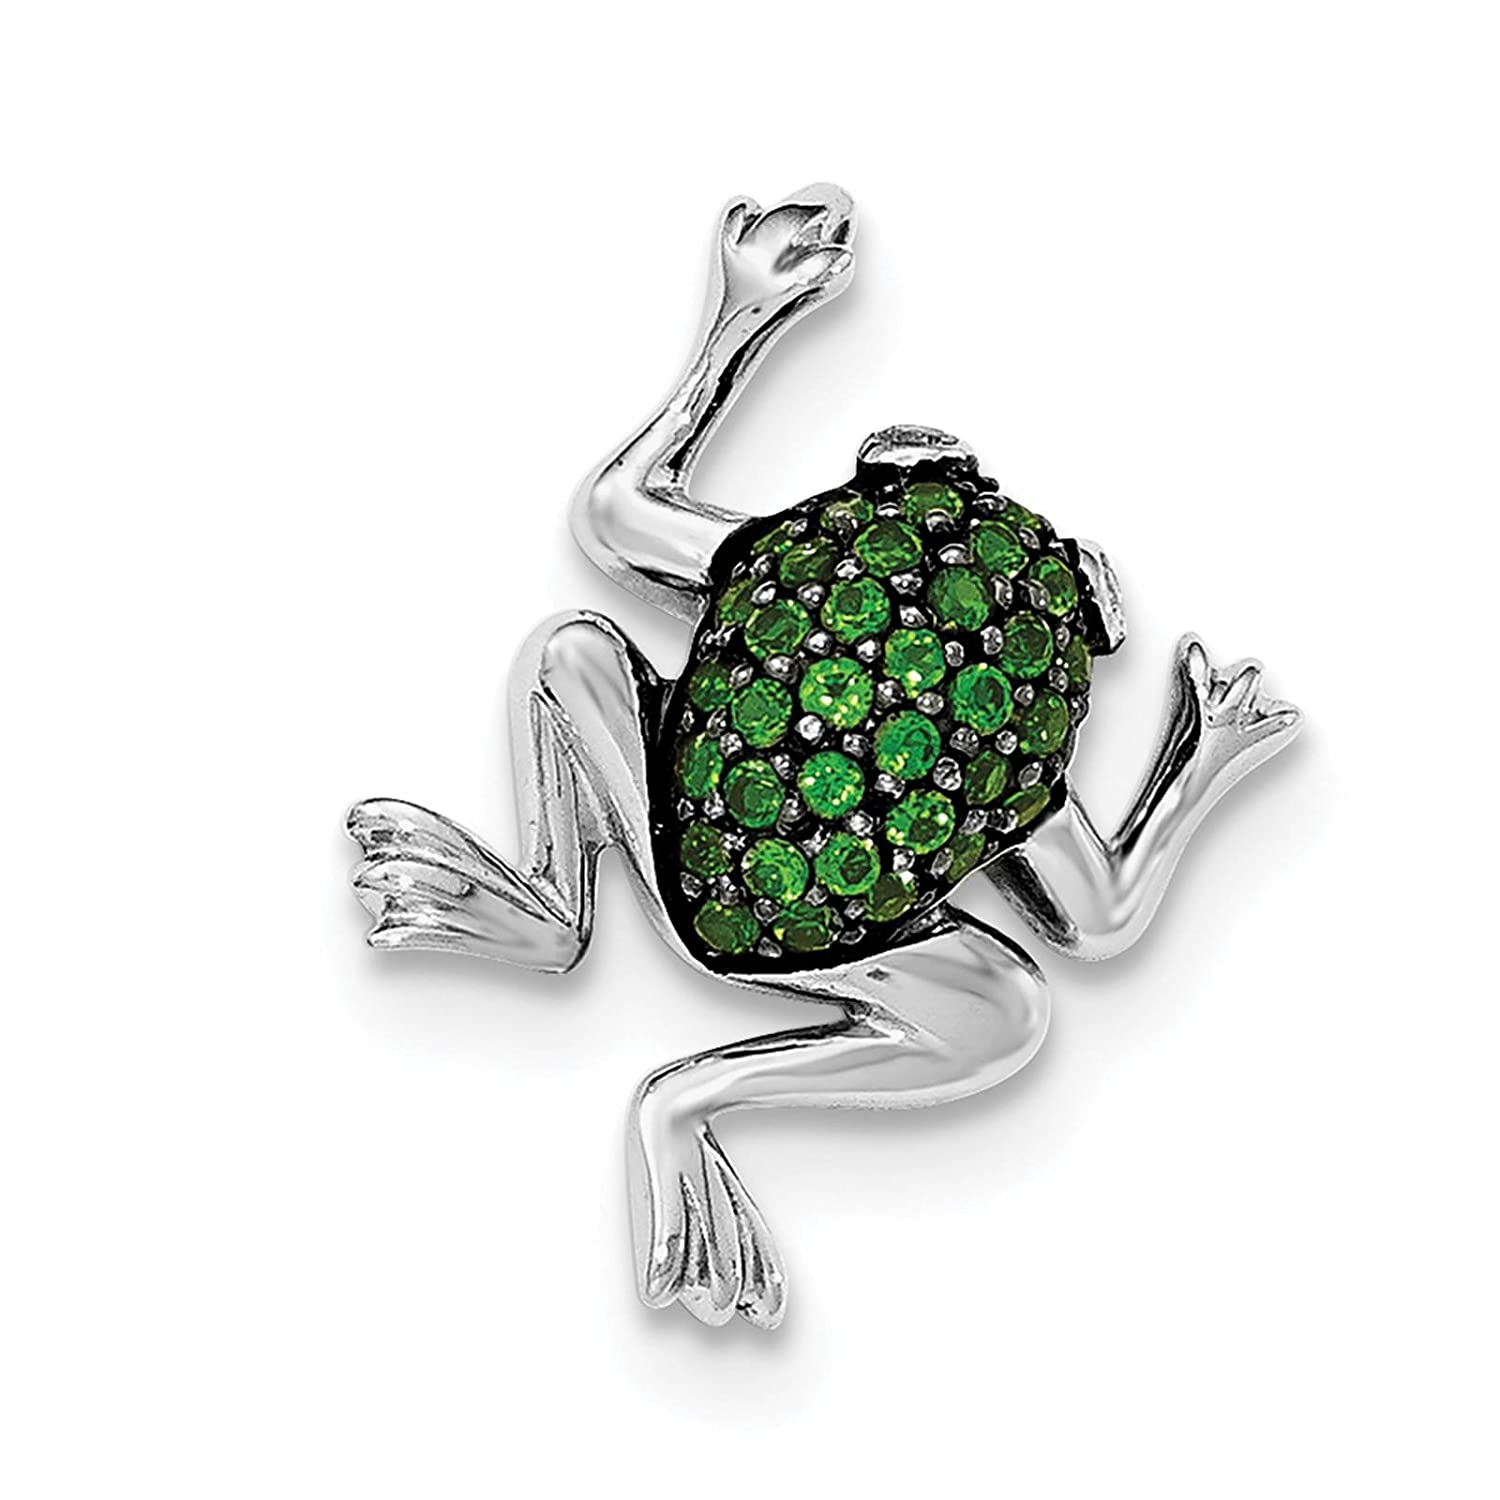 925 Sterling Silver Rhodium-plated White Topaz /& Chrome Diopside Frog Charm Pendant